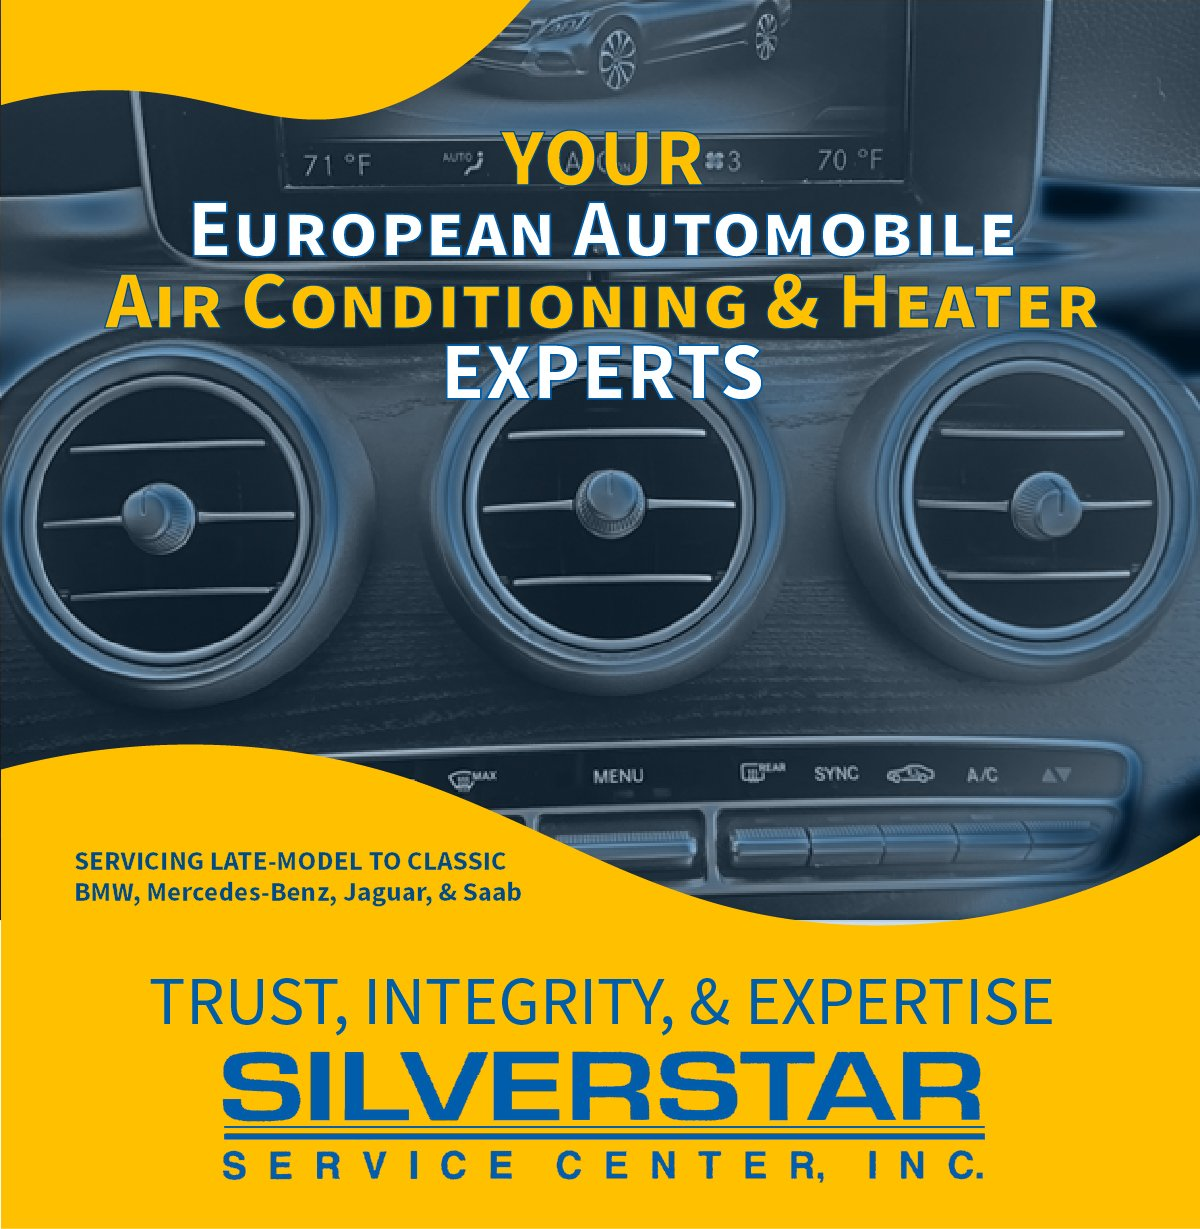 Silver Star Service Center, Inc. European Automobile Air Conditioning and Heater Service Experts